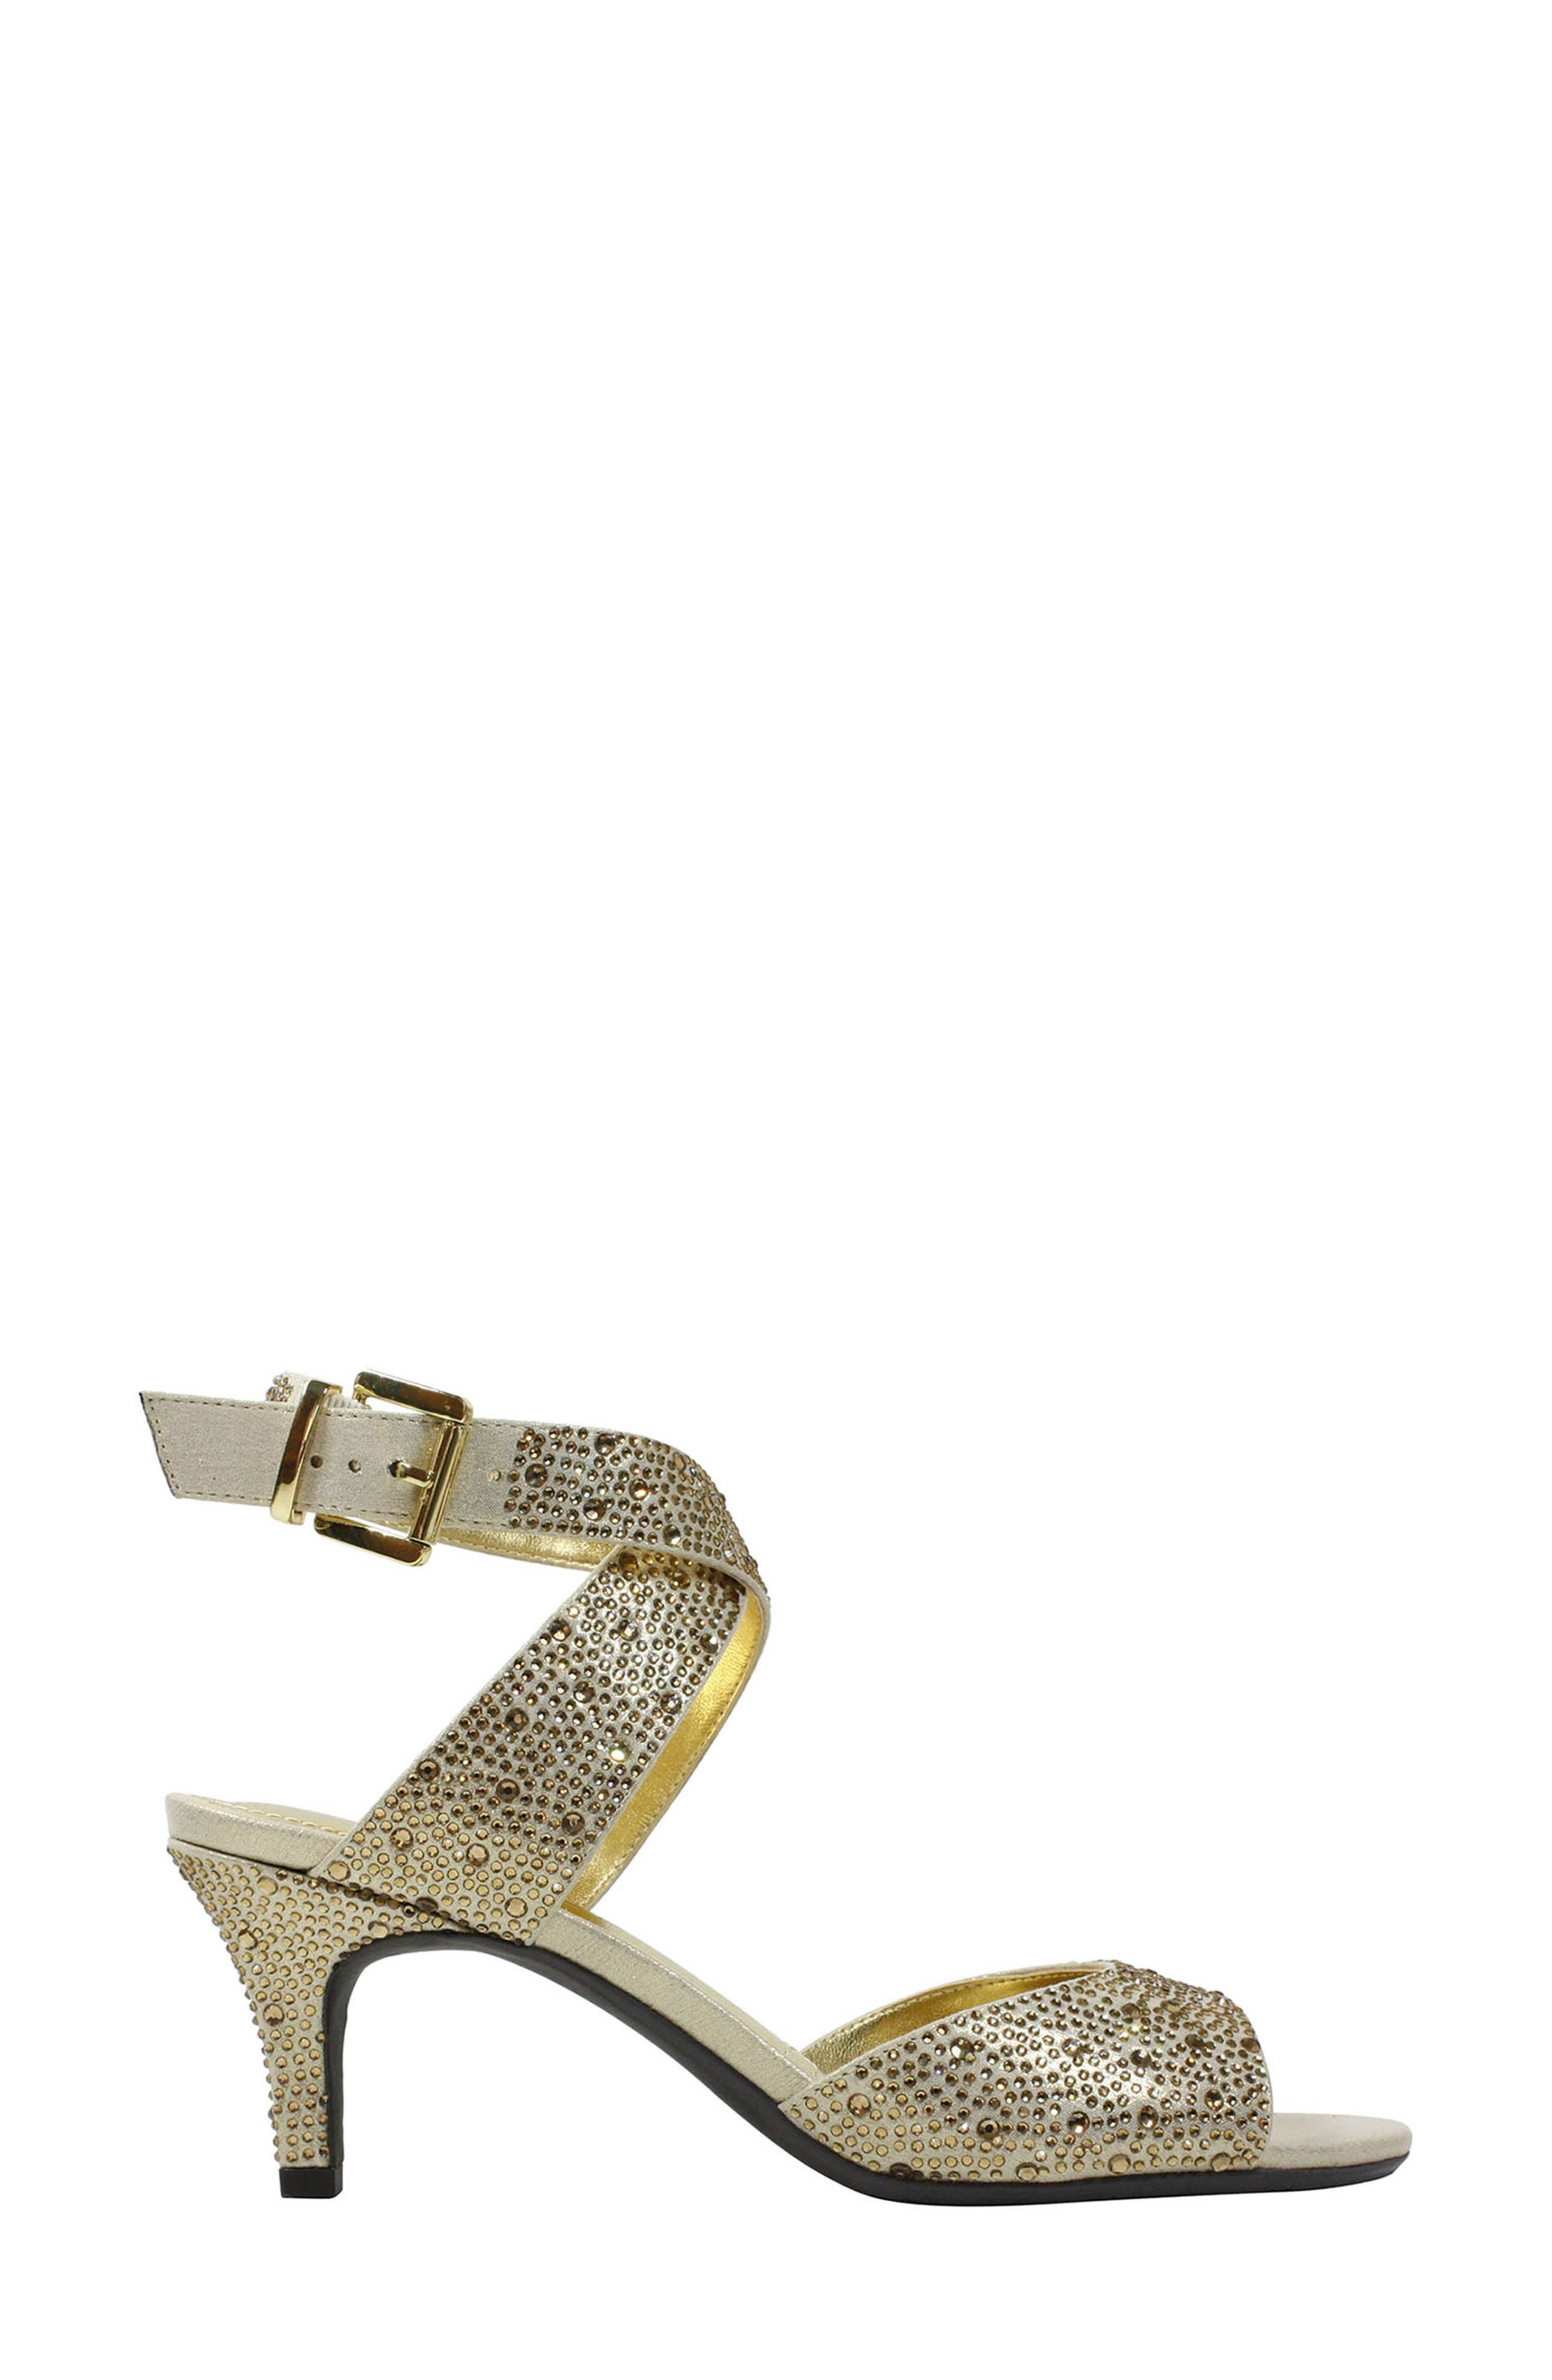 'Soncino' Ankle Strap Sandal,                             Alternate thumbnail 2, color,                             Gold Fabric